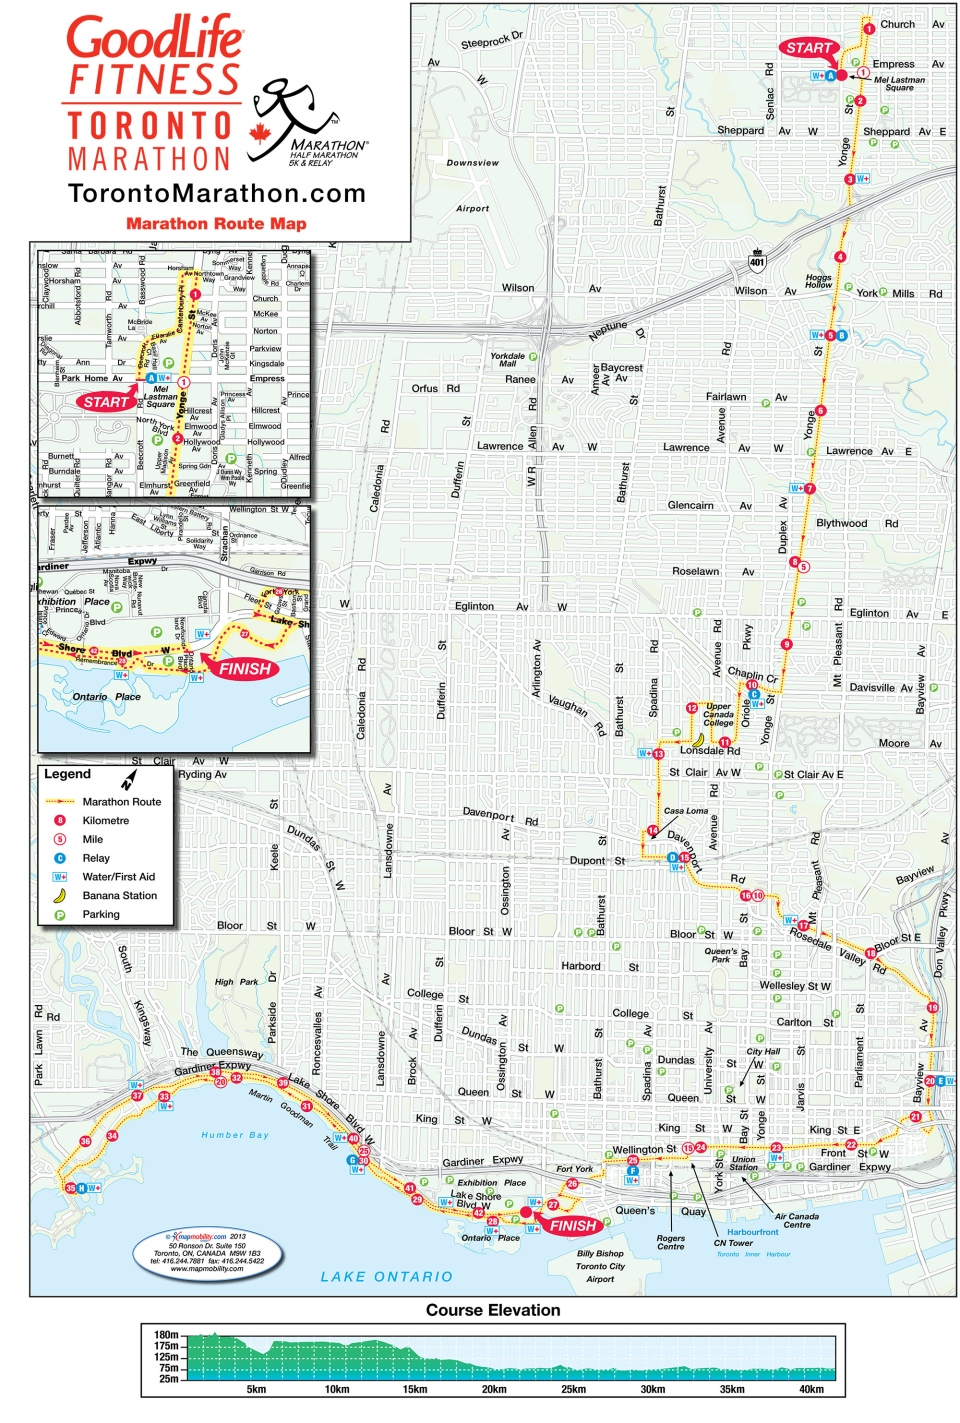 The Goodlife Fitness Toronto Marathon route is pictured.